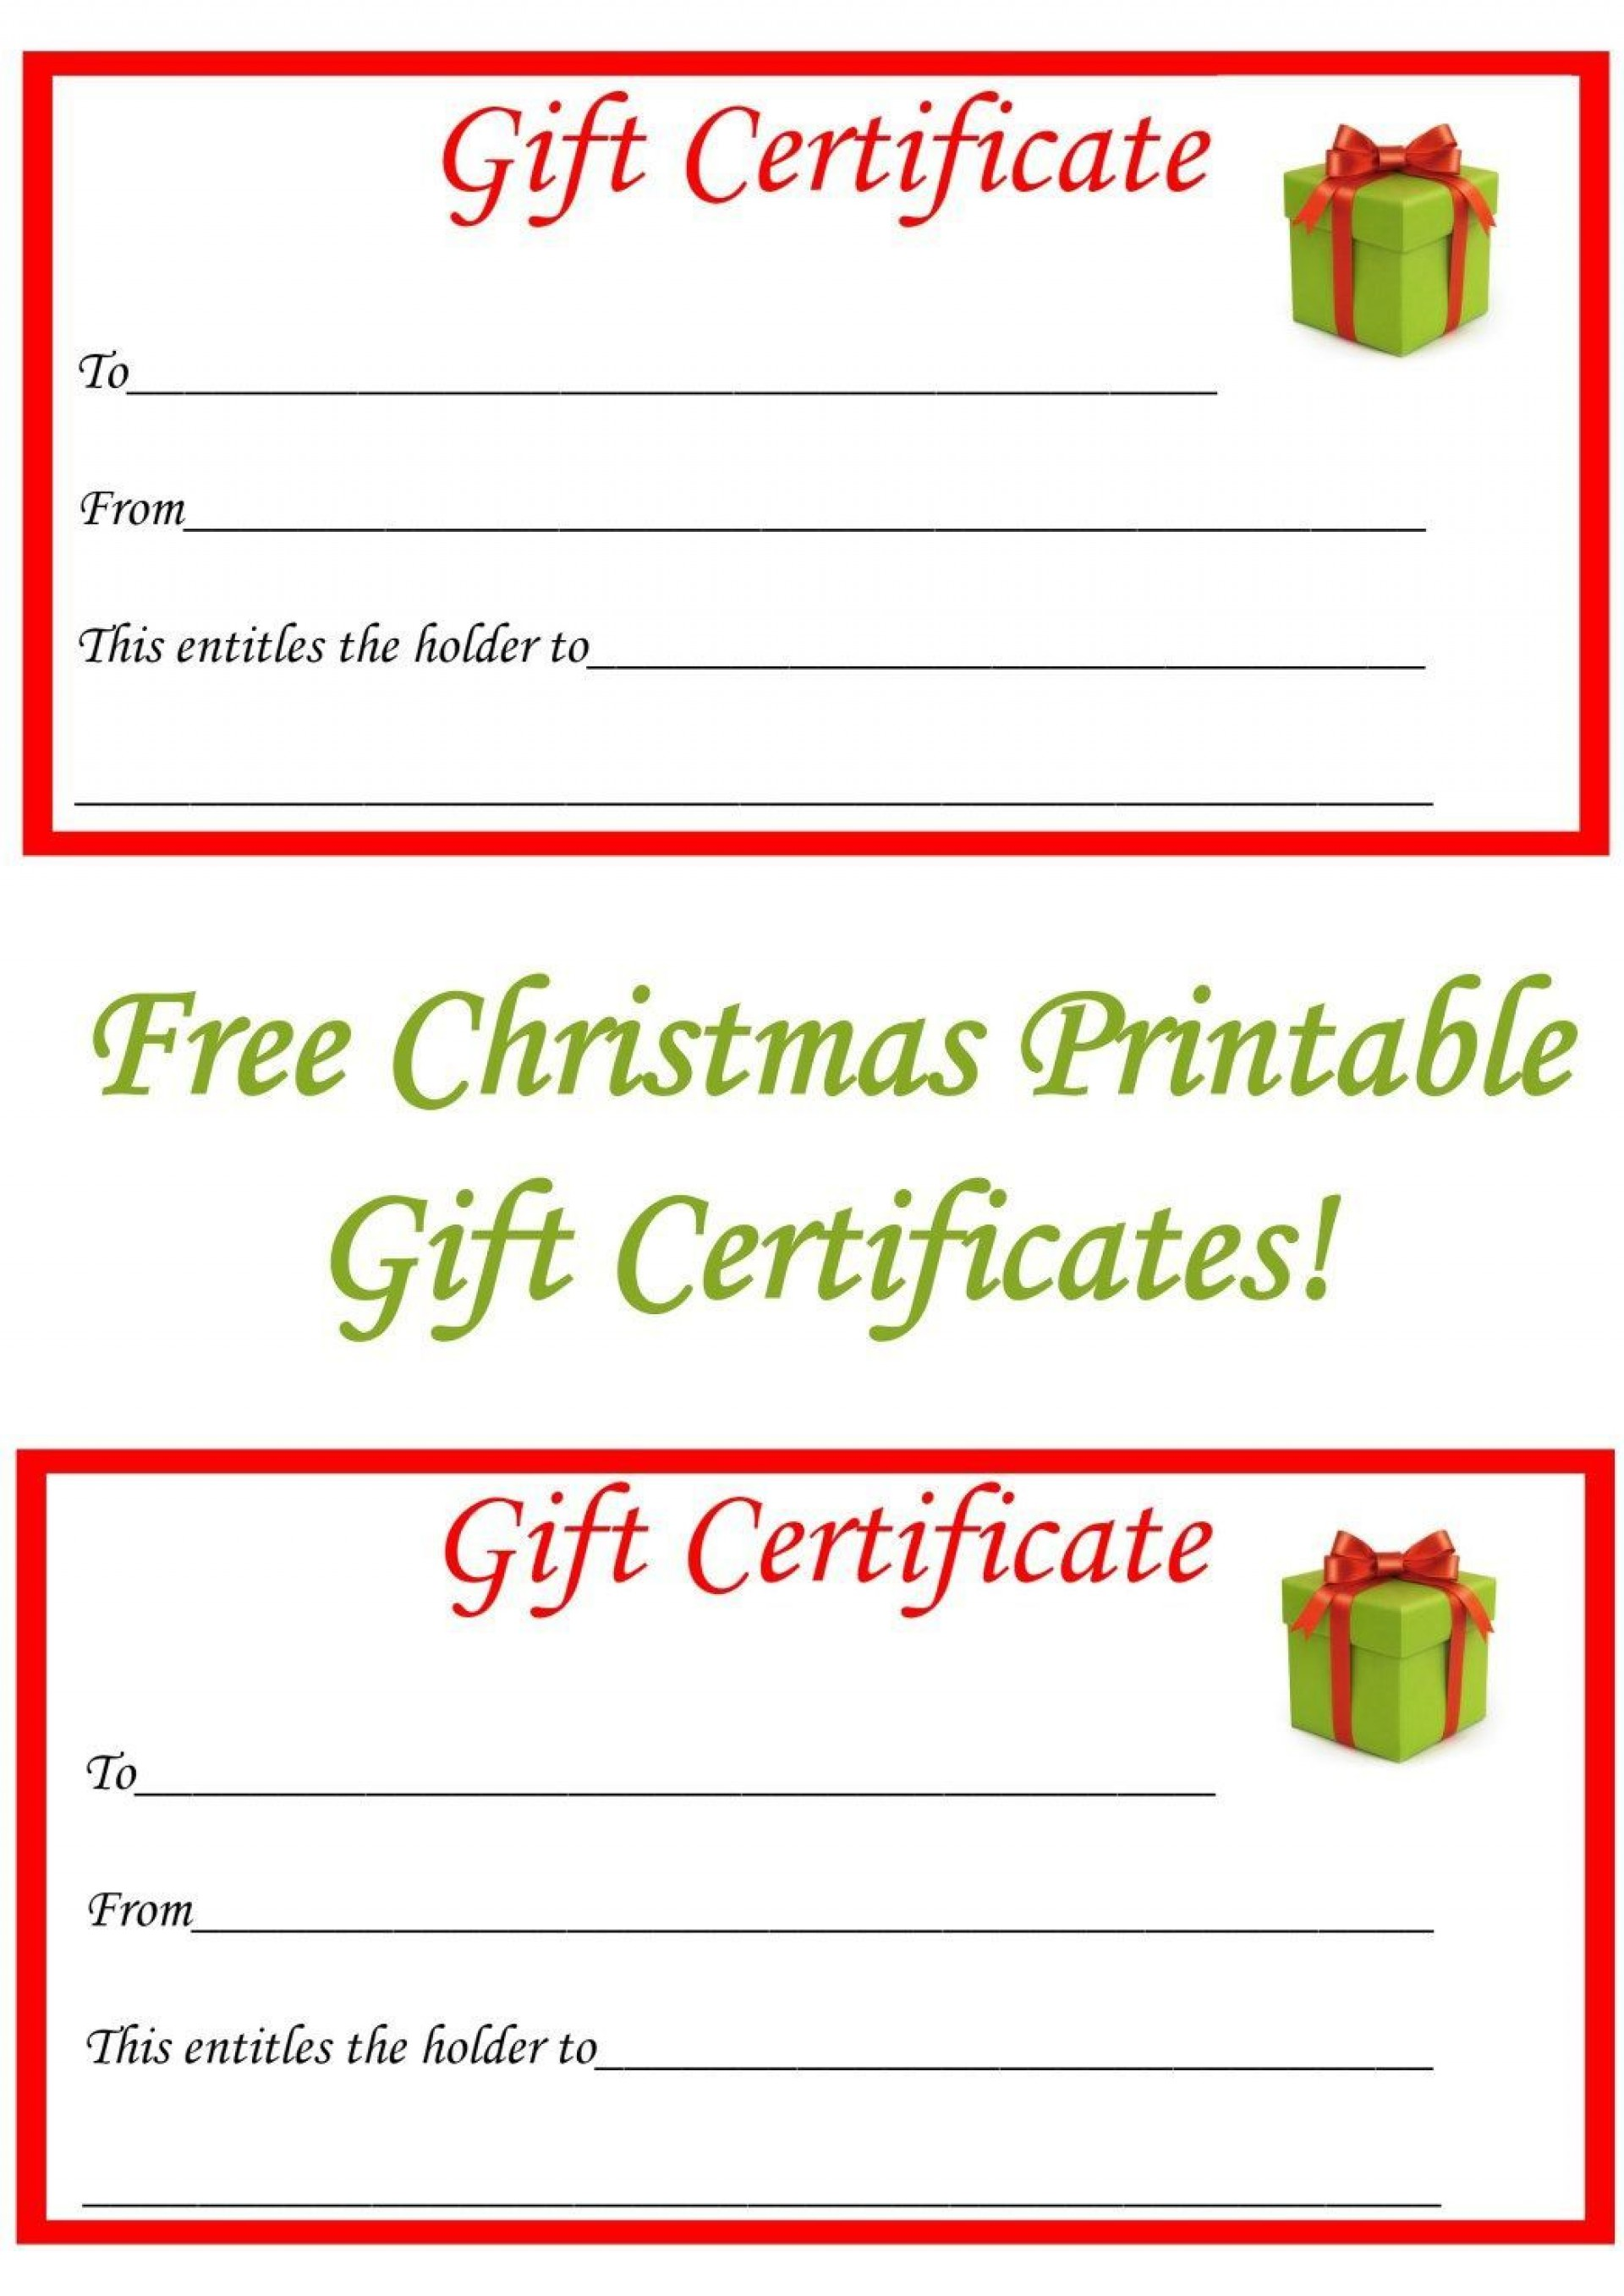 001 Simple Printable Gift Certificate Template Highest Quality  Card Free Christma Massage1920